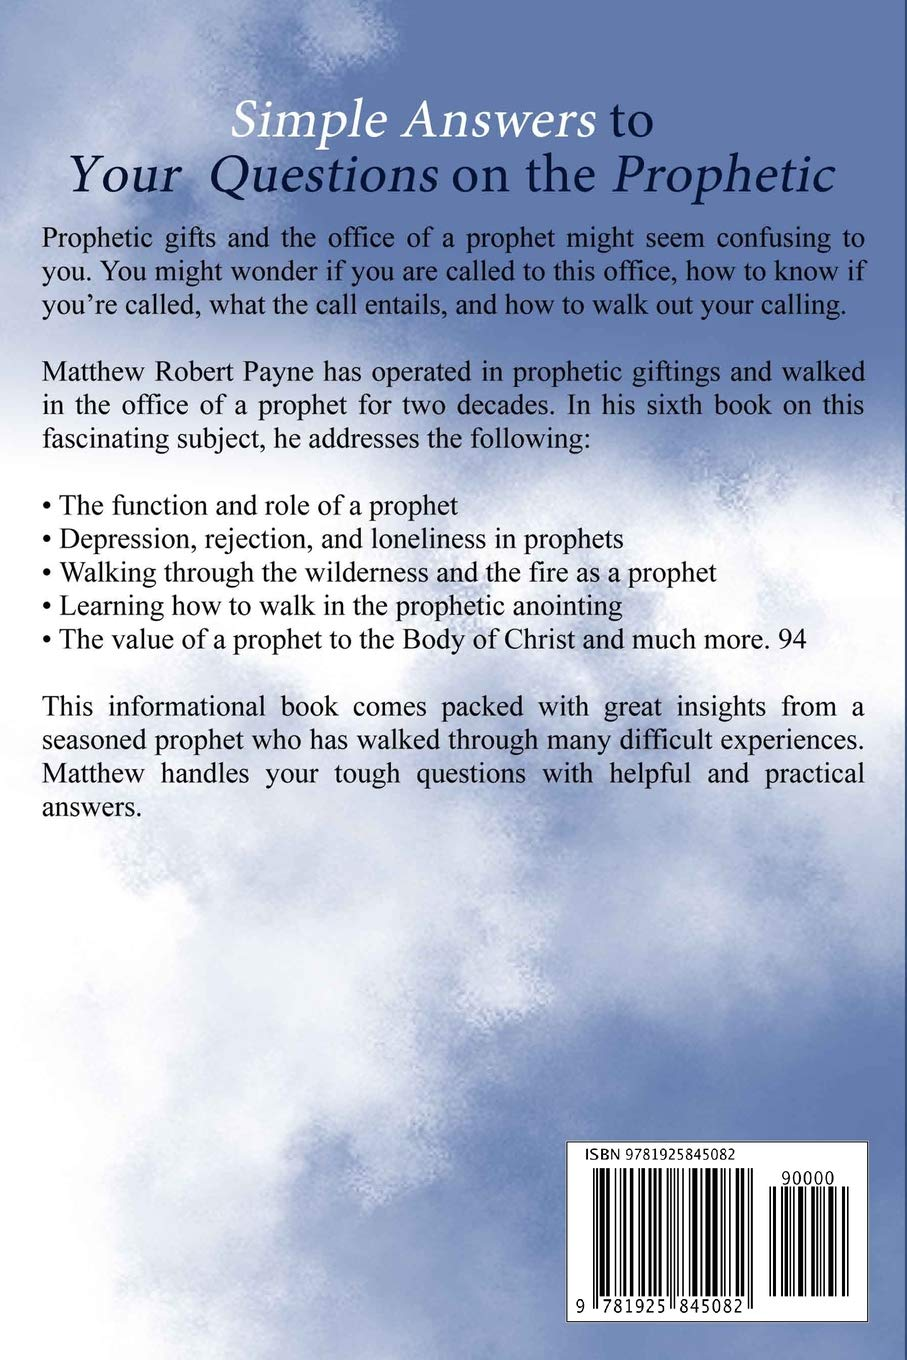 Simple Answers to Your Questions on the Prophetic: Matthew Robert